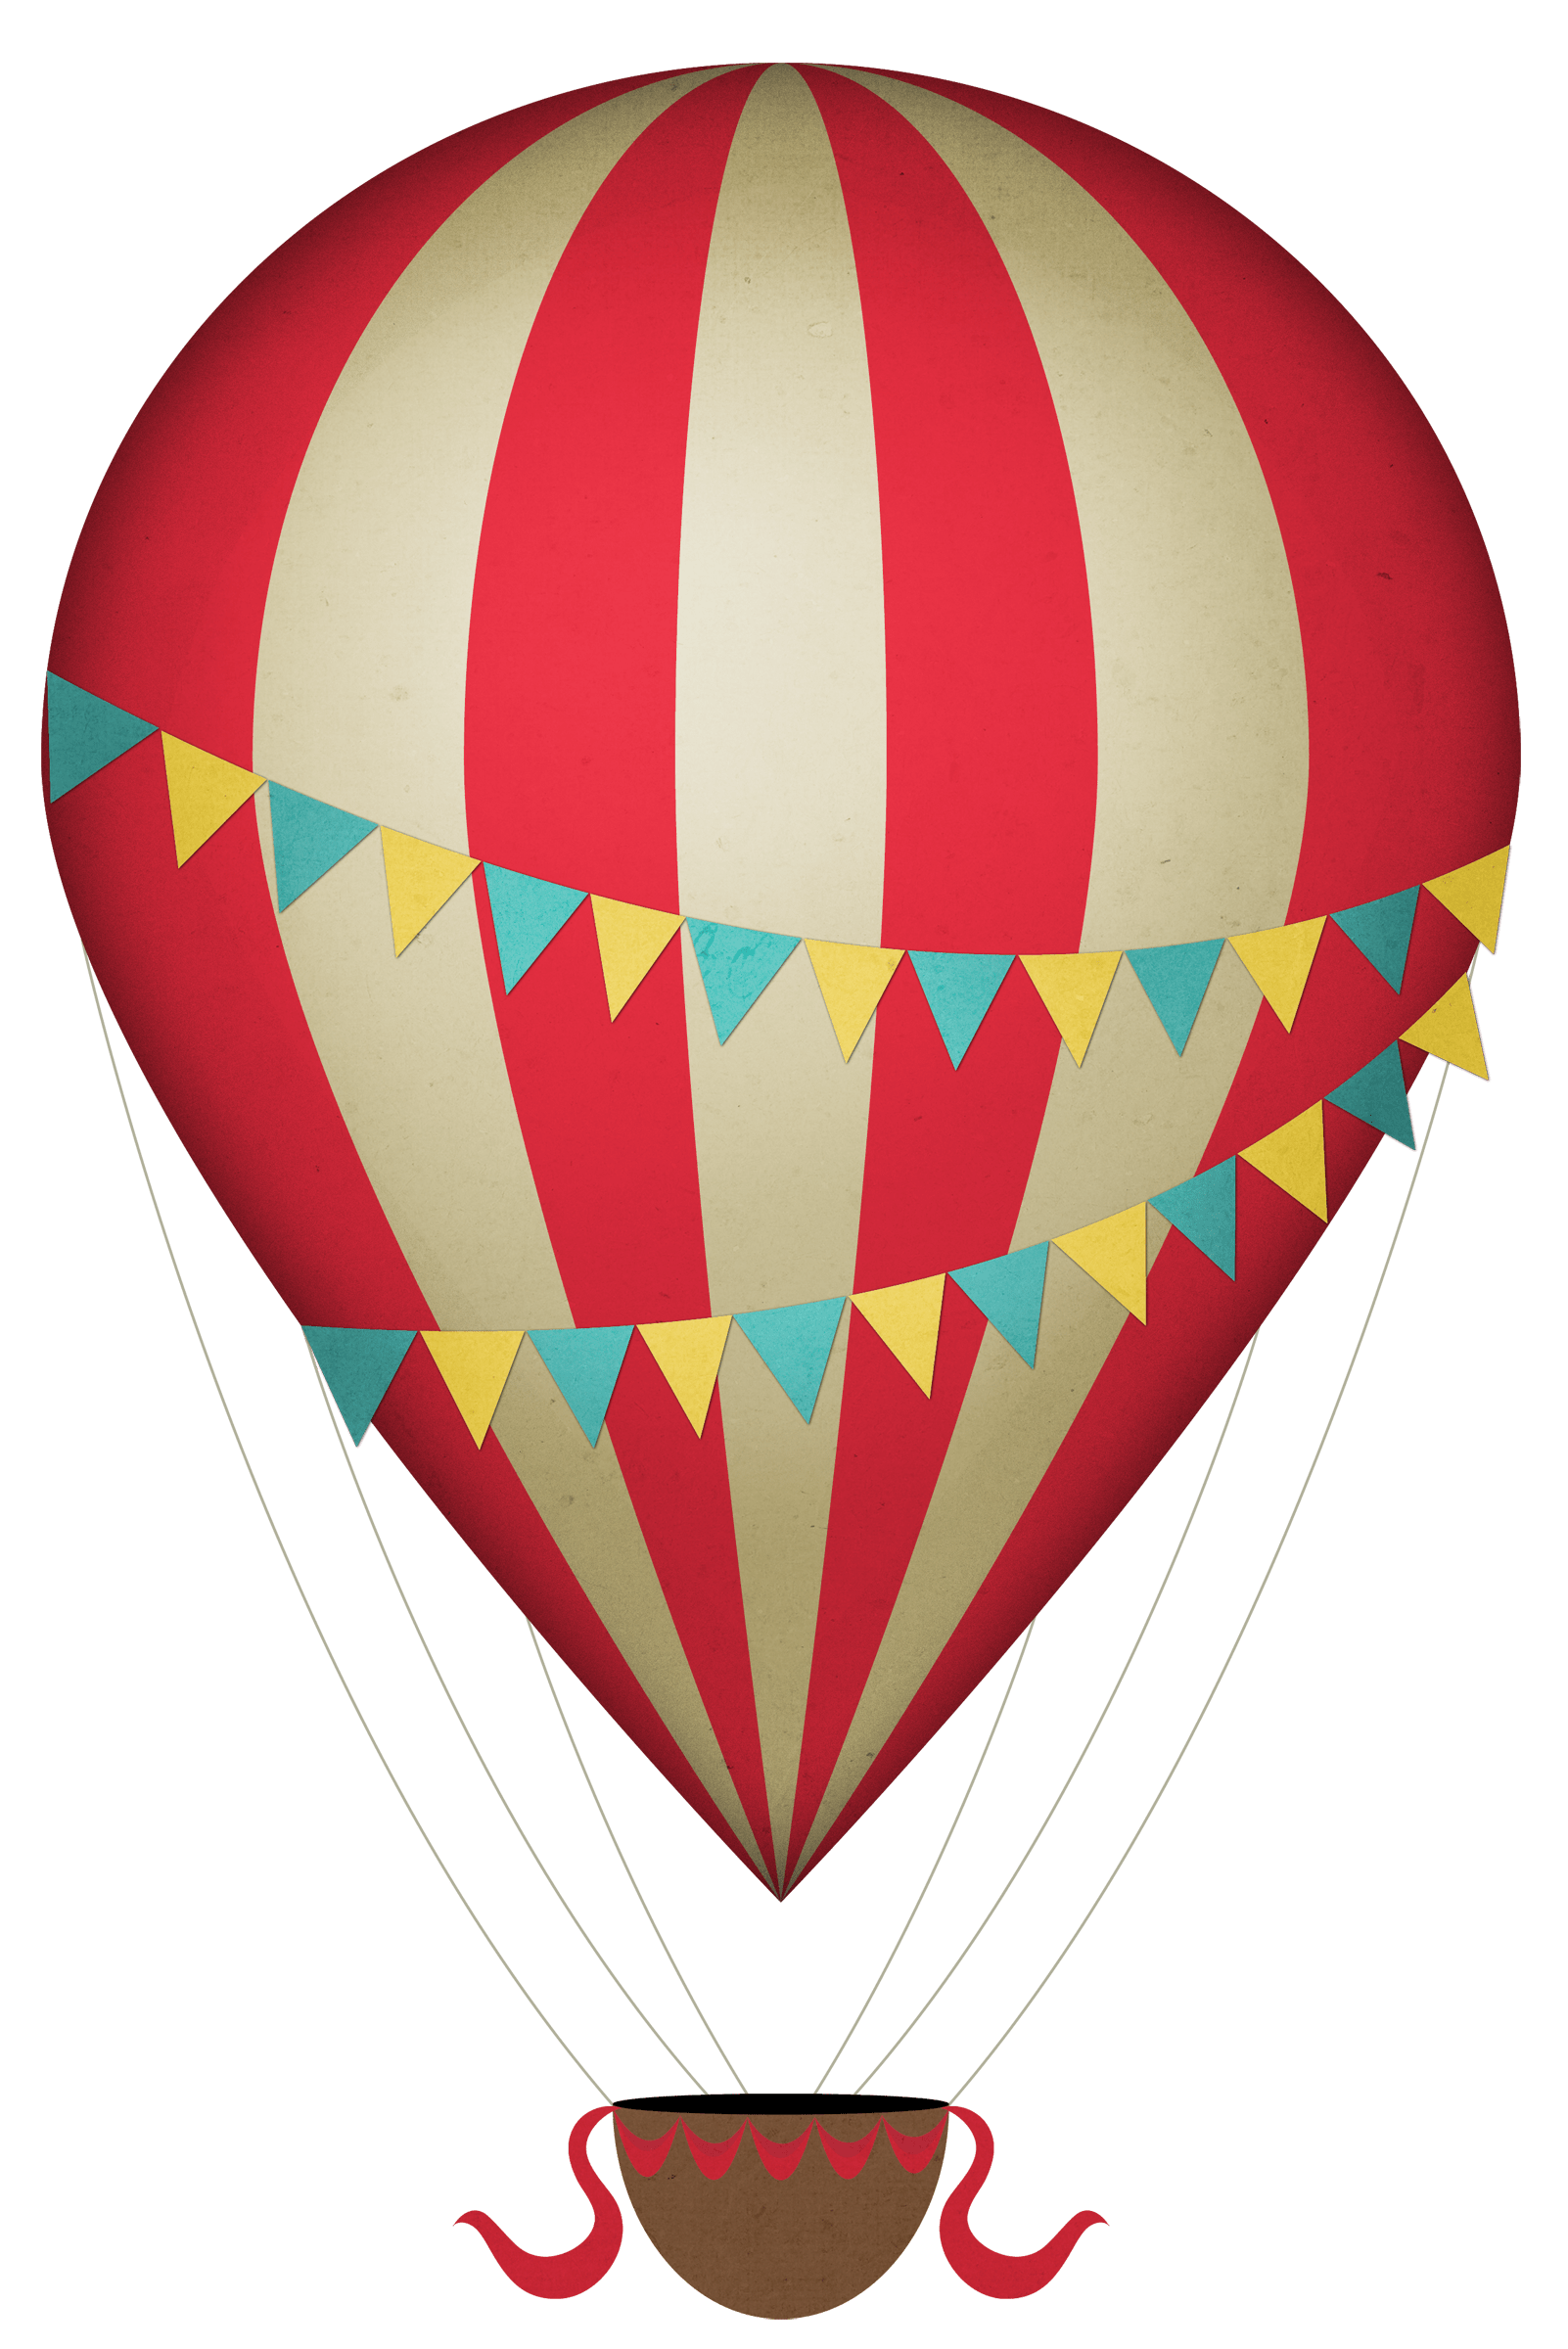 Vintage Clipart Hot Air Balloon Transparent Png Stickpng